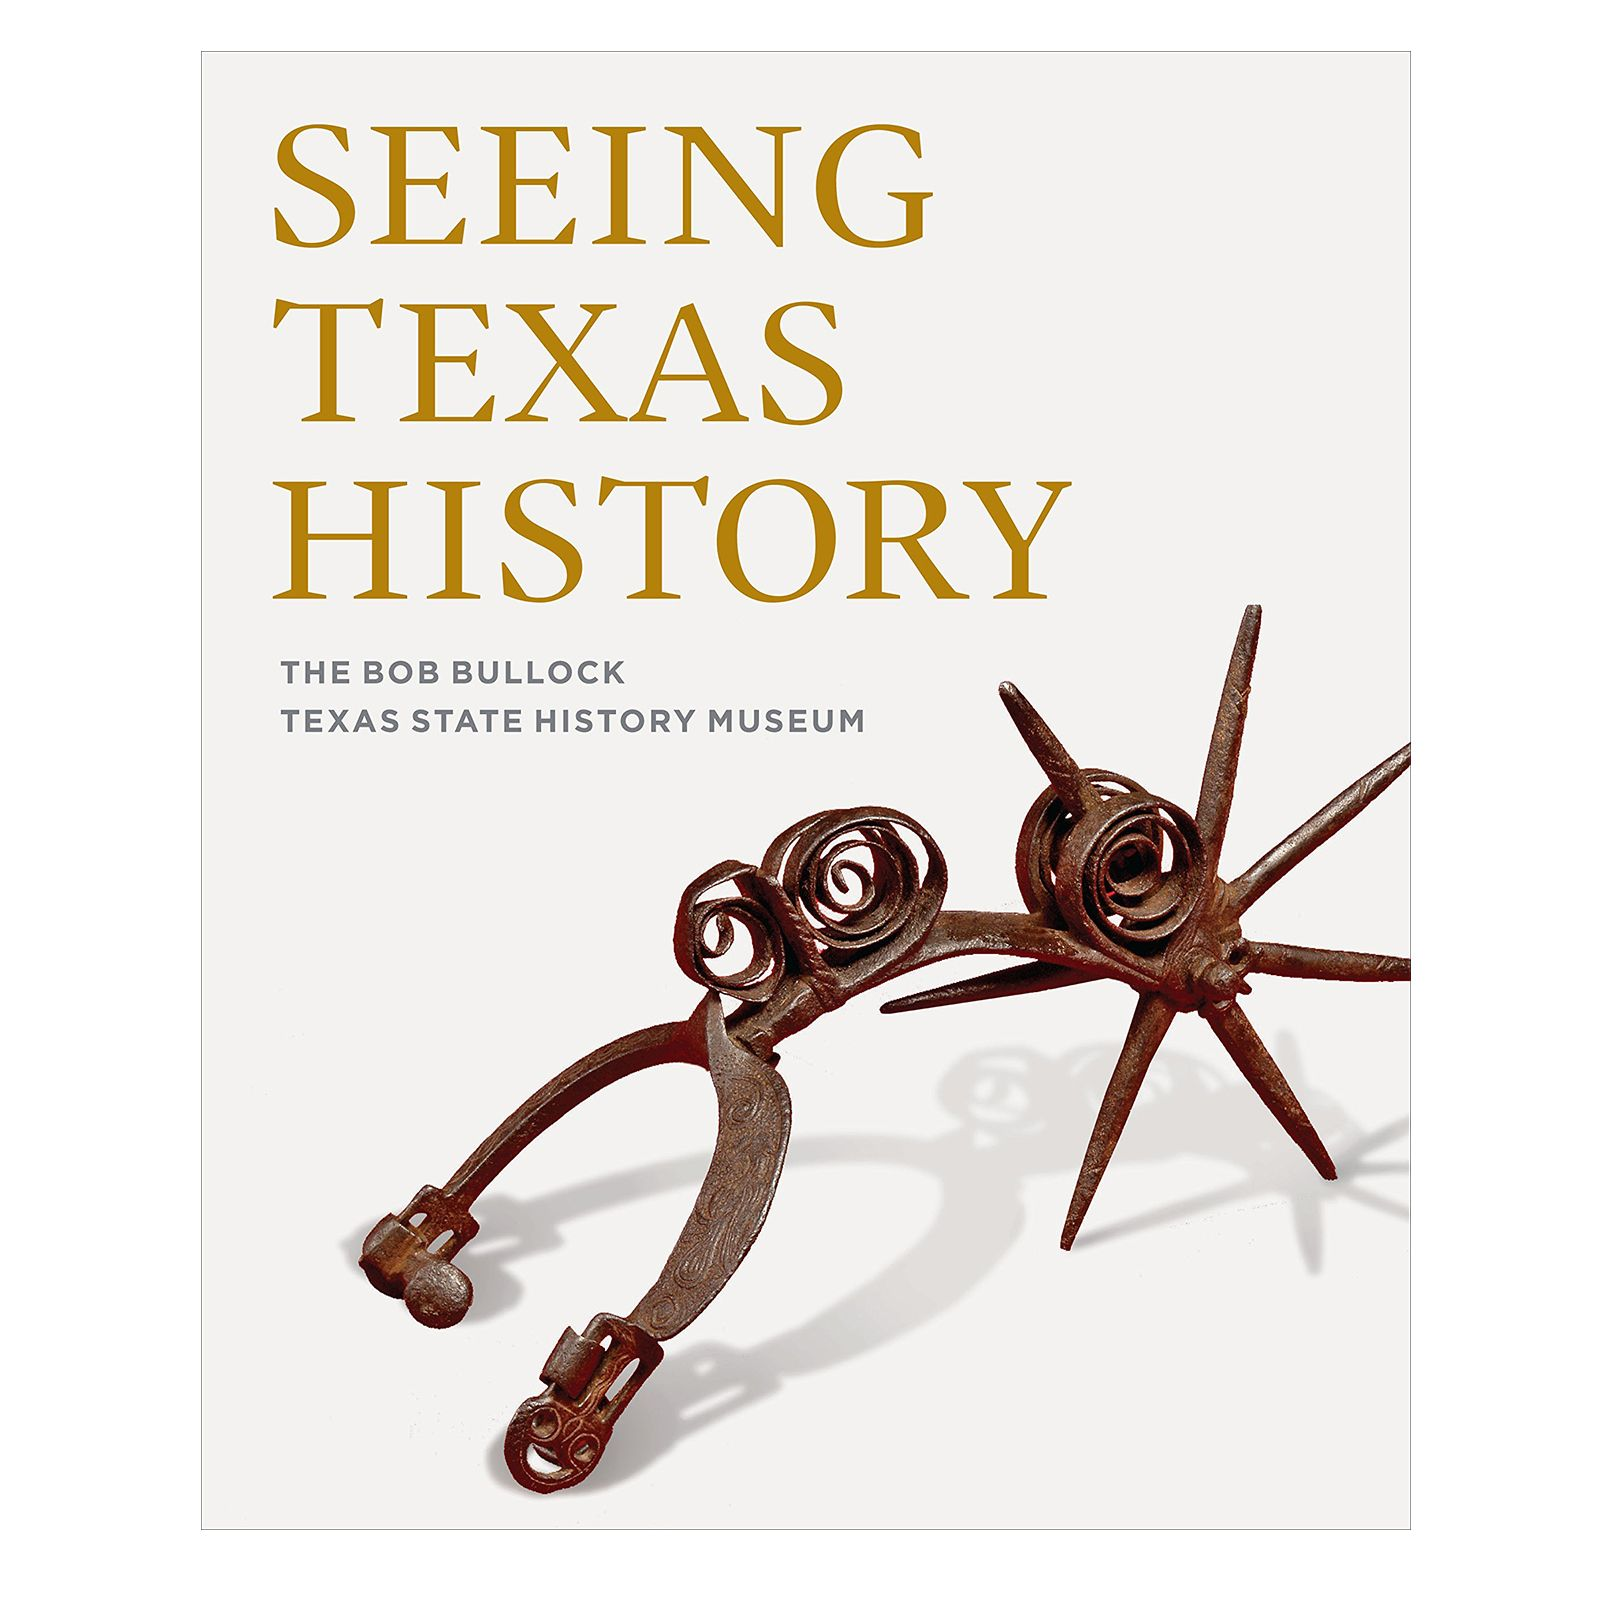 Seeing Texas History